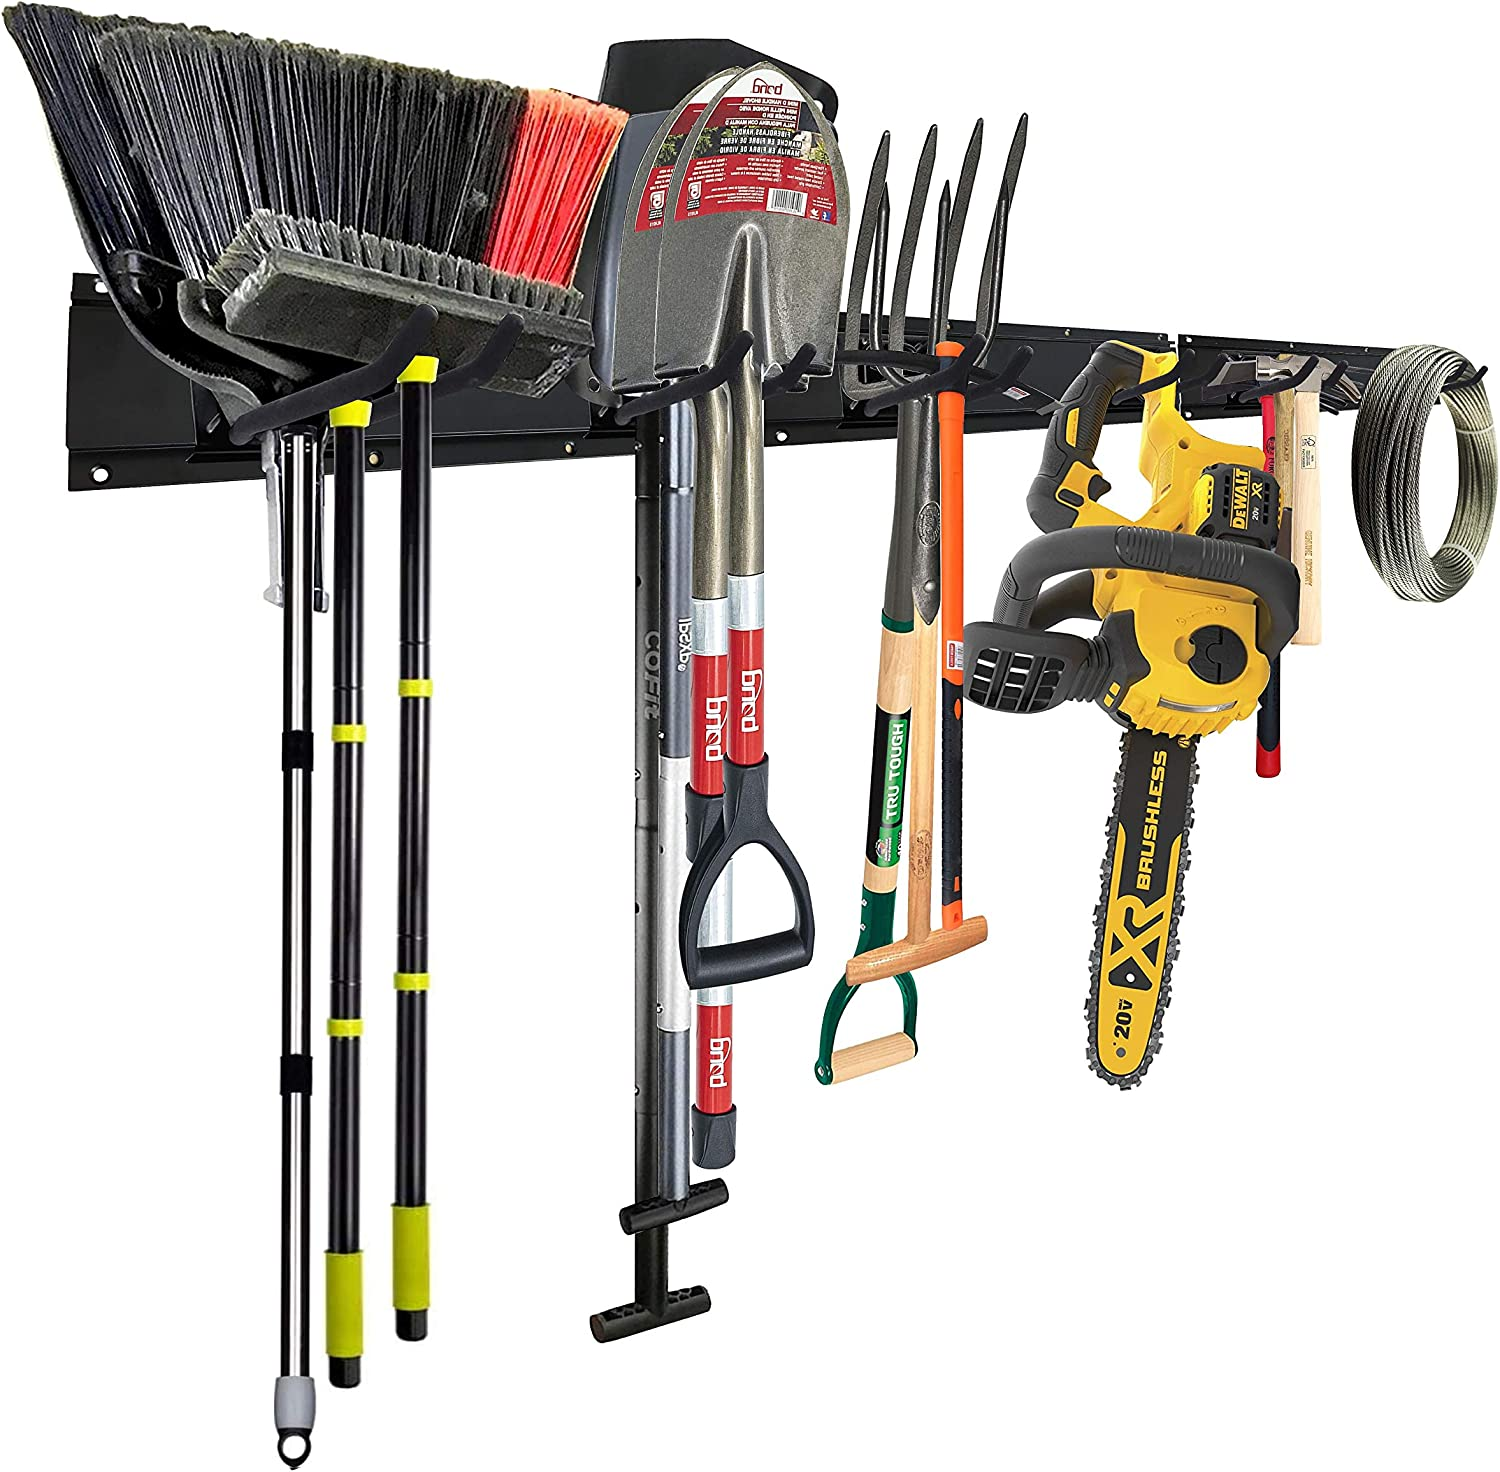 Garage Tool Organizers Storage Wall Mounted with 6 Removable Hooks and 3 Board, Super Heavy Duty Powder Coated Steel Garden Tool Hanger Rack for Bike, Chair, Broom, Mop, Rake Shovel & Tools